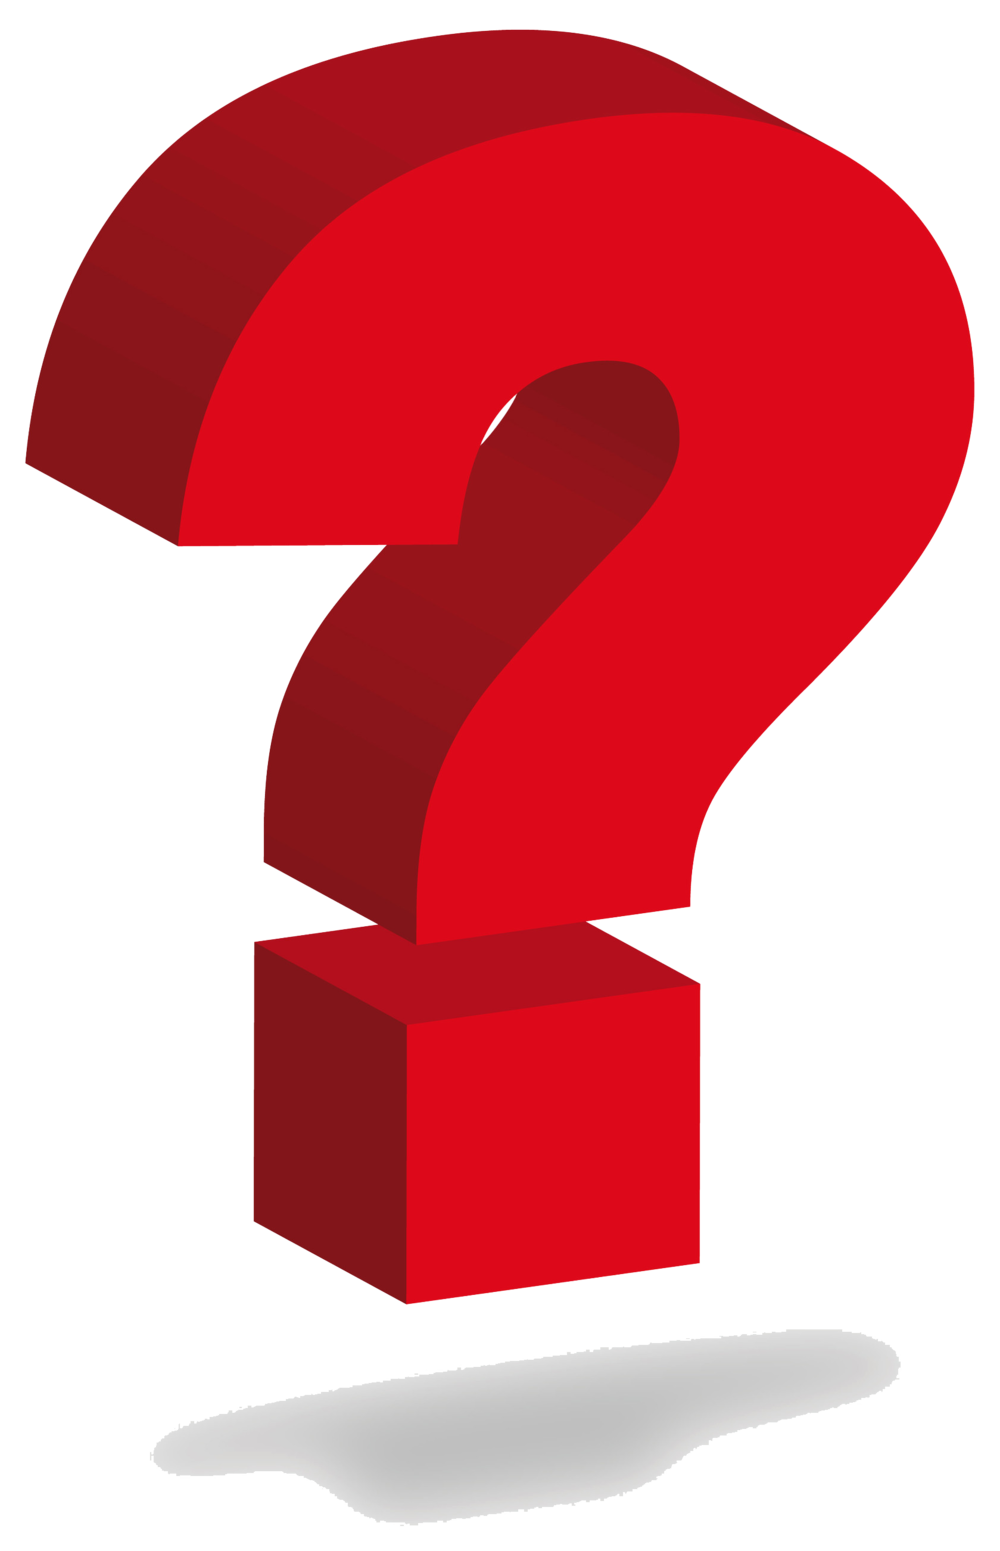 Moving question mark clipart clipart freeuse download Animation Question Marks | Free download best Animation ... clipart freeuse download